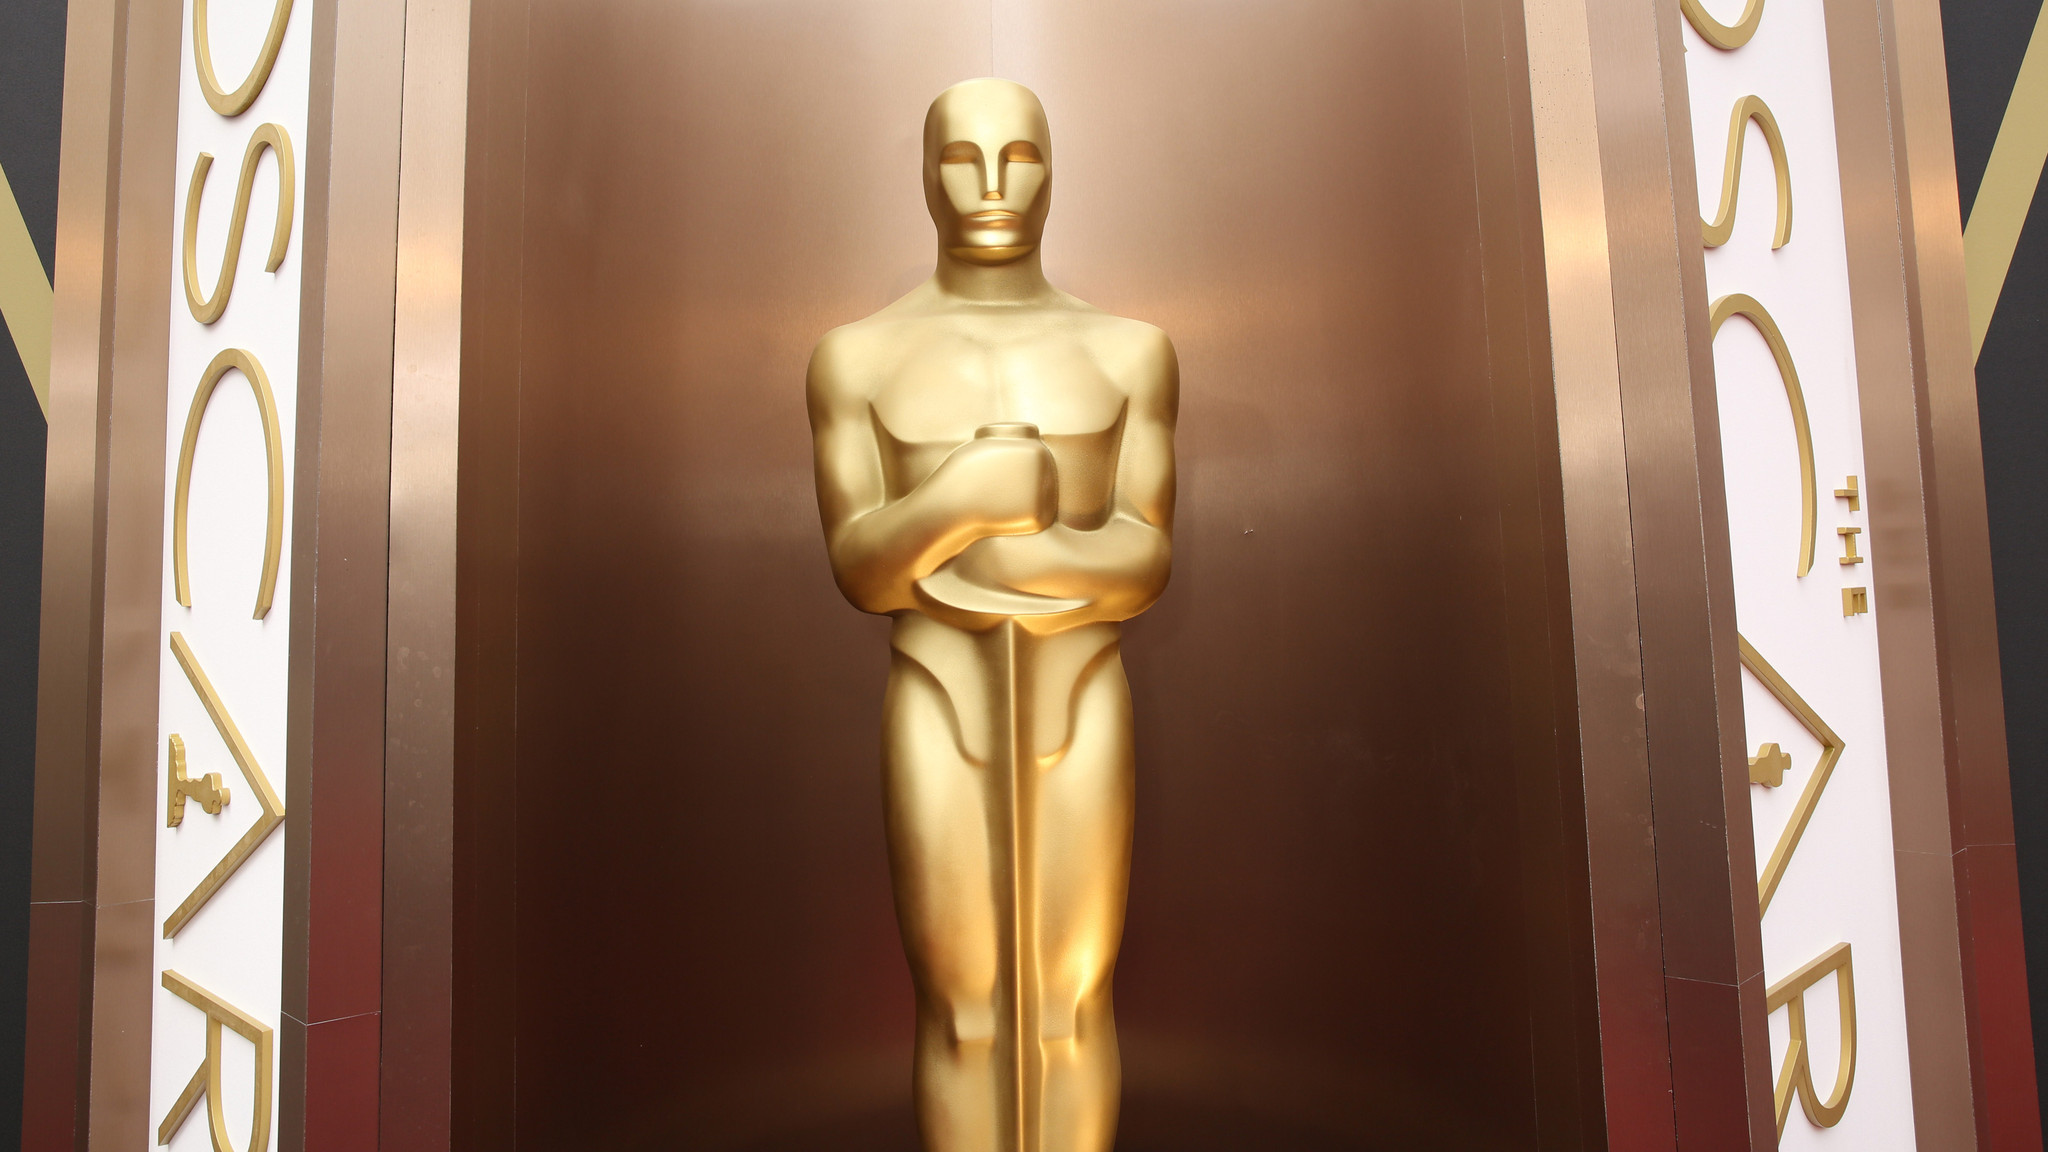 An Oscar statue is displayed at the Oscars at the Dolby Theatre in Los Angeles (Matt Sayles/Invision/AP)